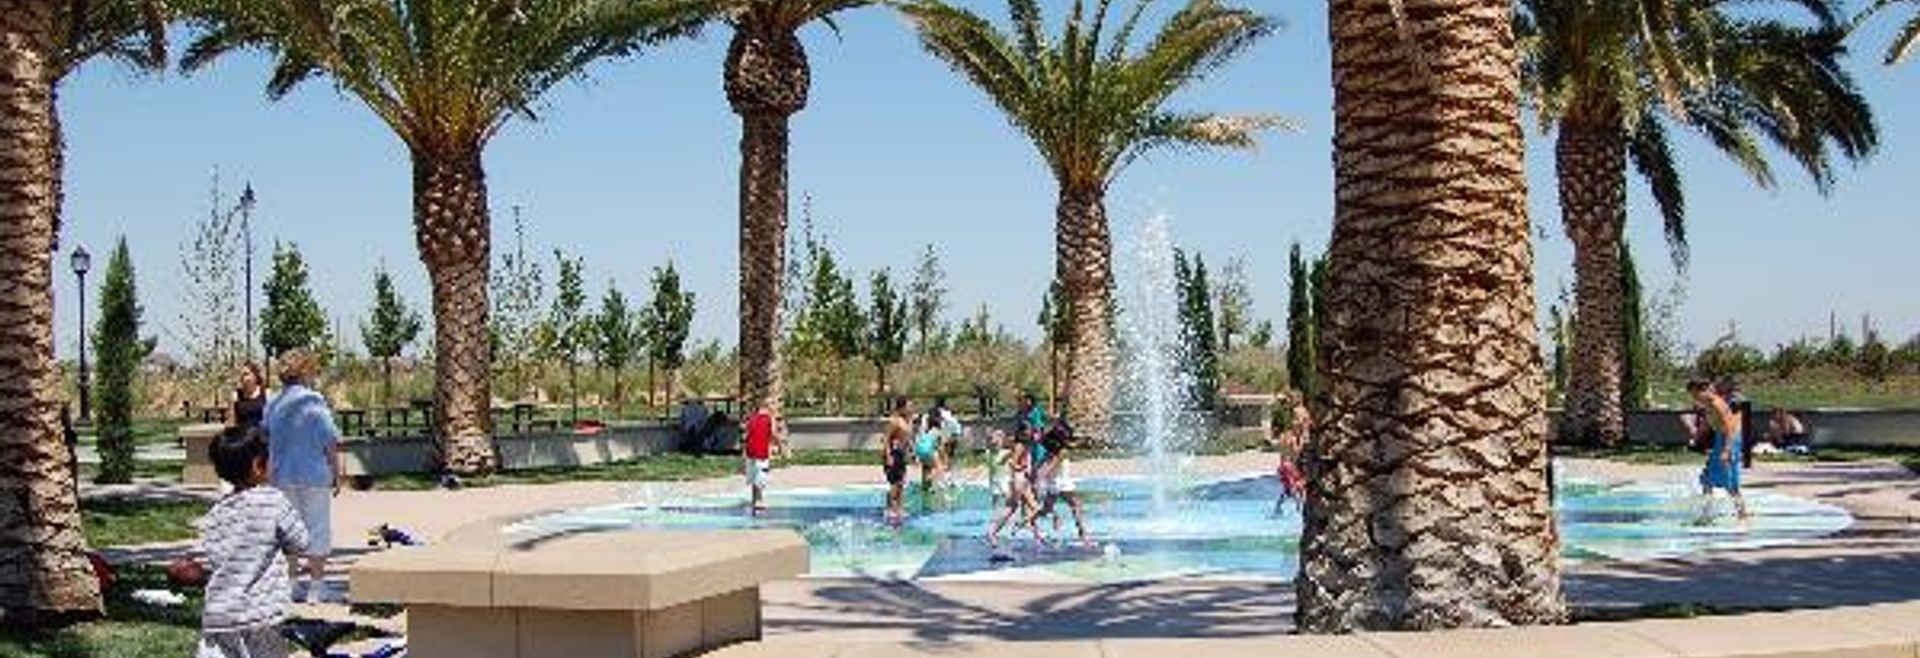 Mountain House Splash Pad